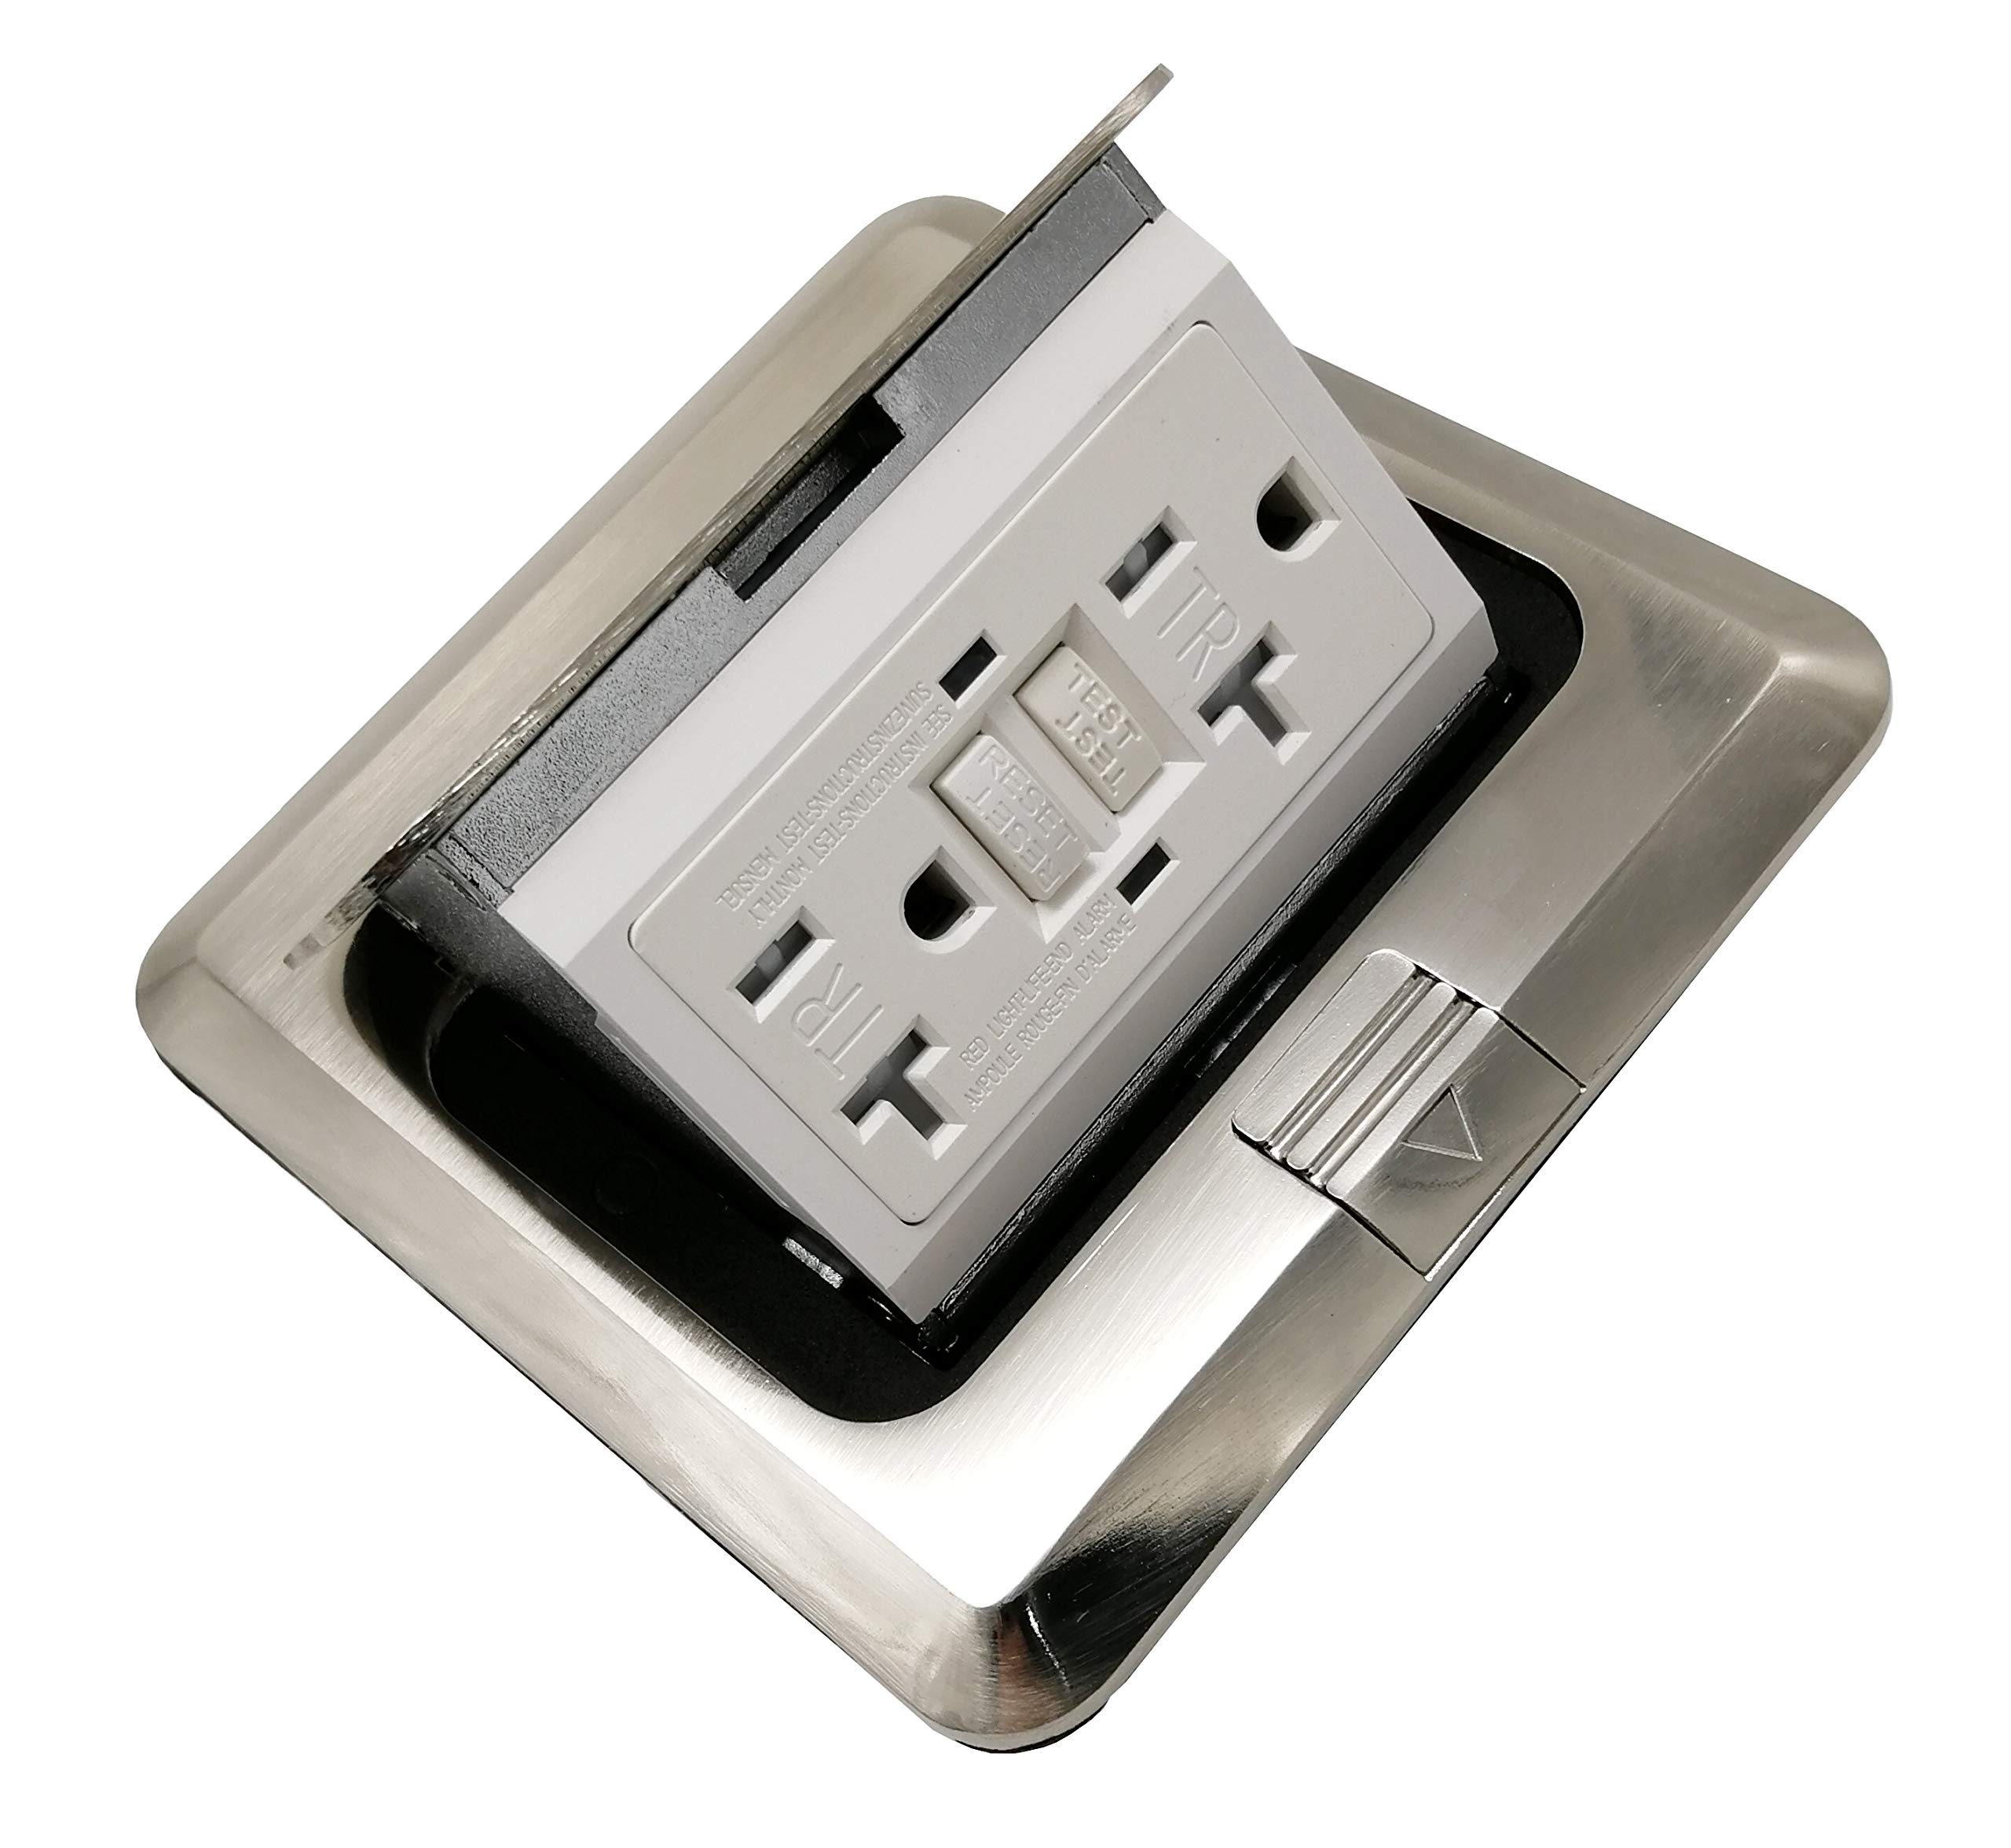 Pop Up Receptacle Floor Outlet Countertop Box With W/20 A GFI Duplex Receptacle, Brass, Nickle Plating